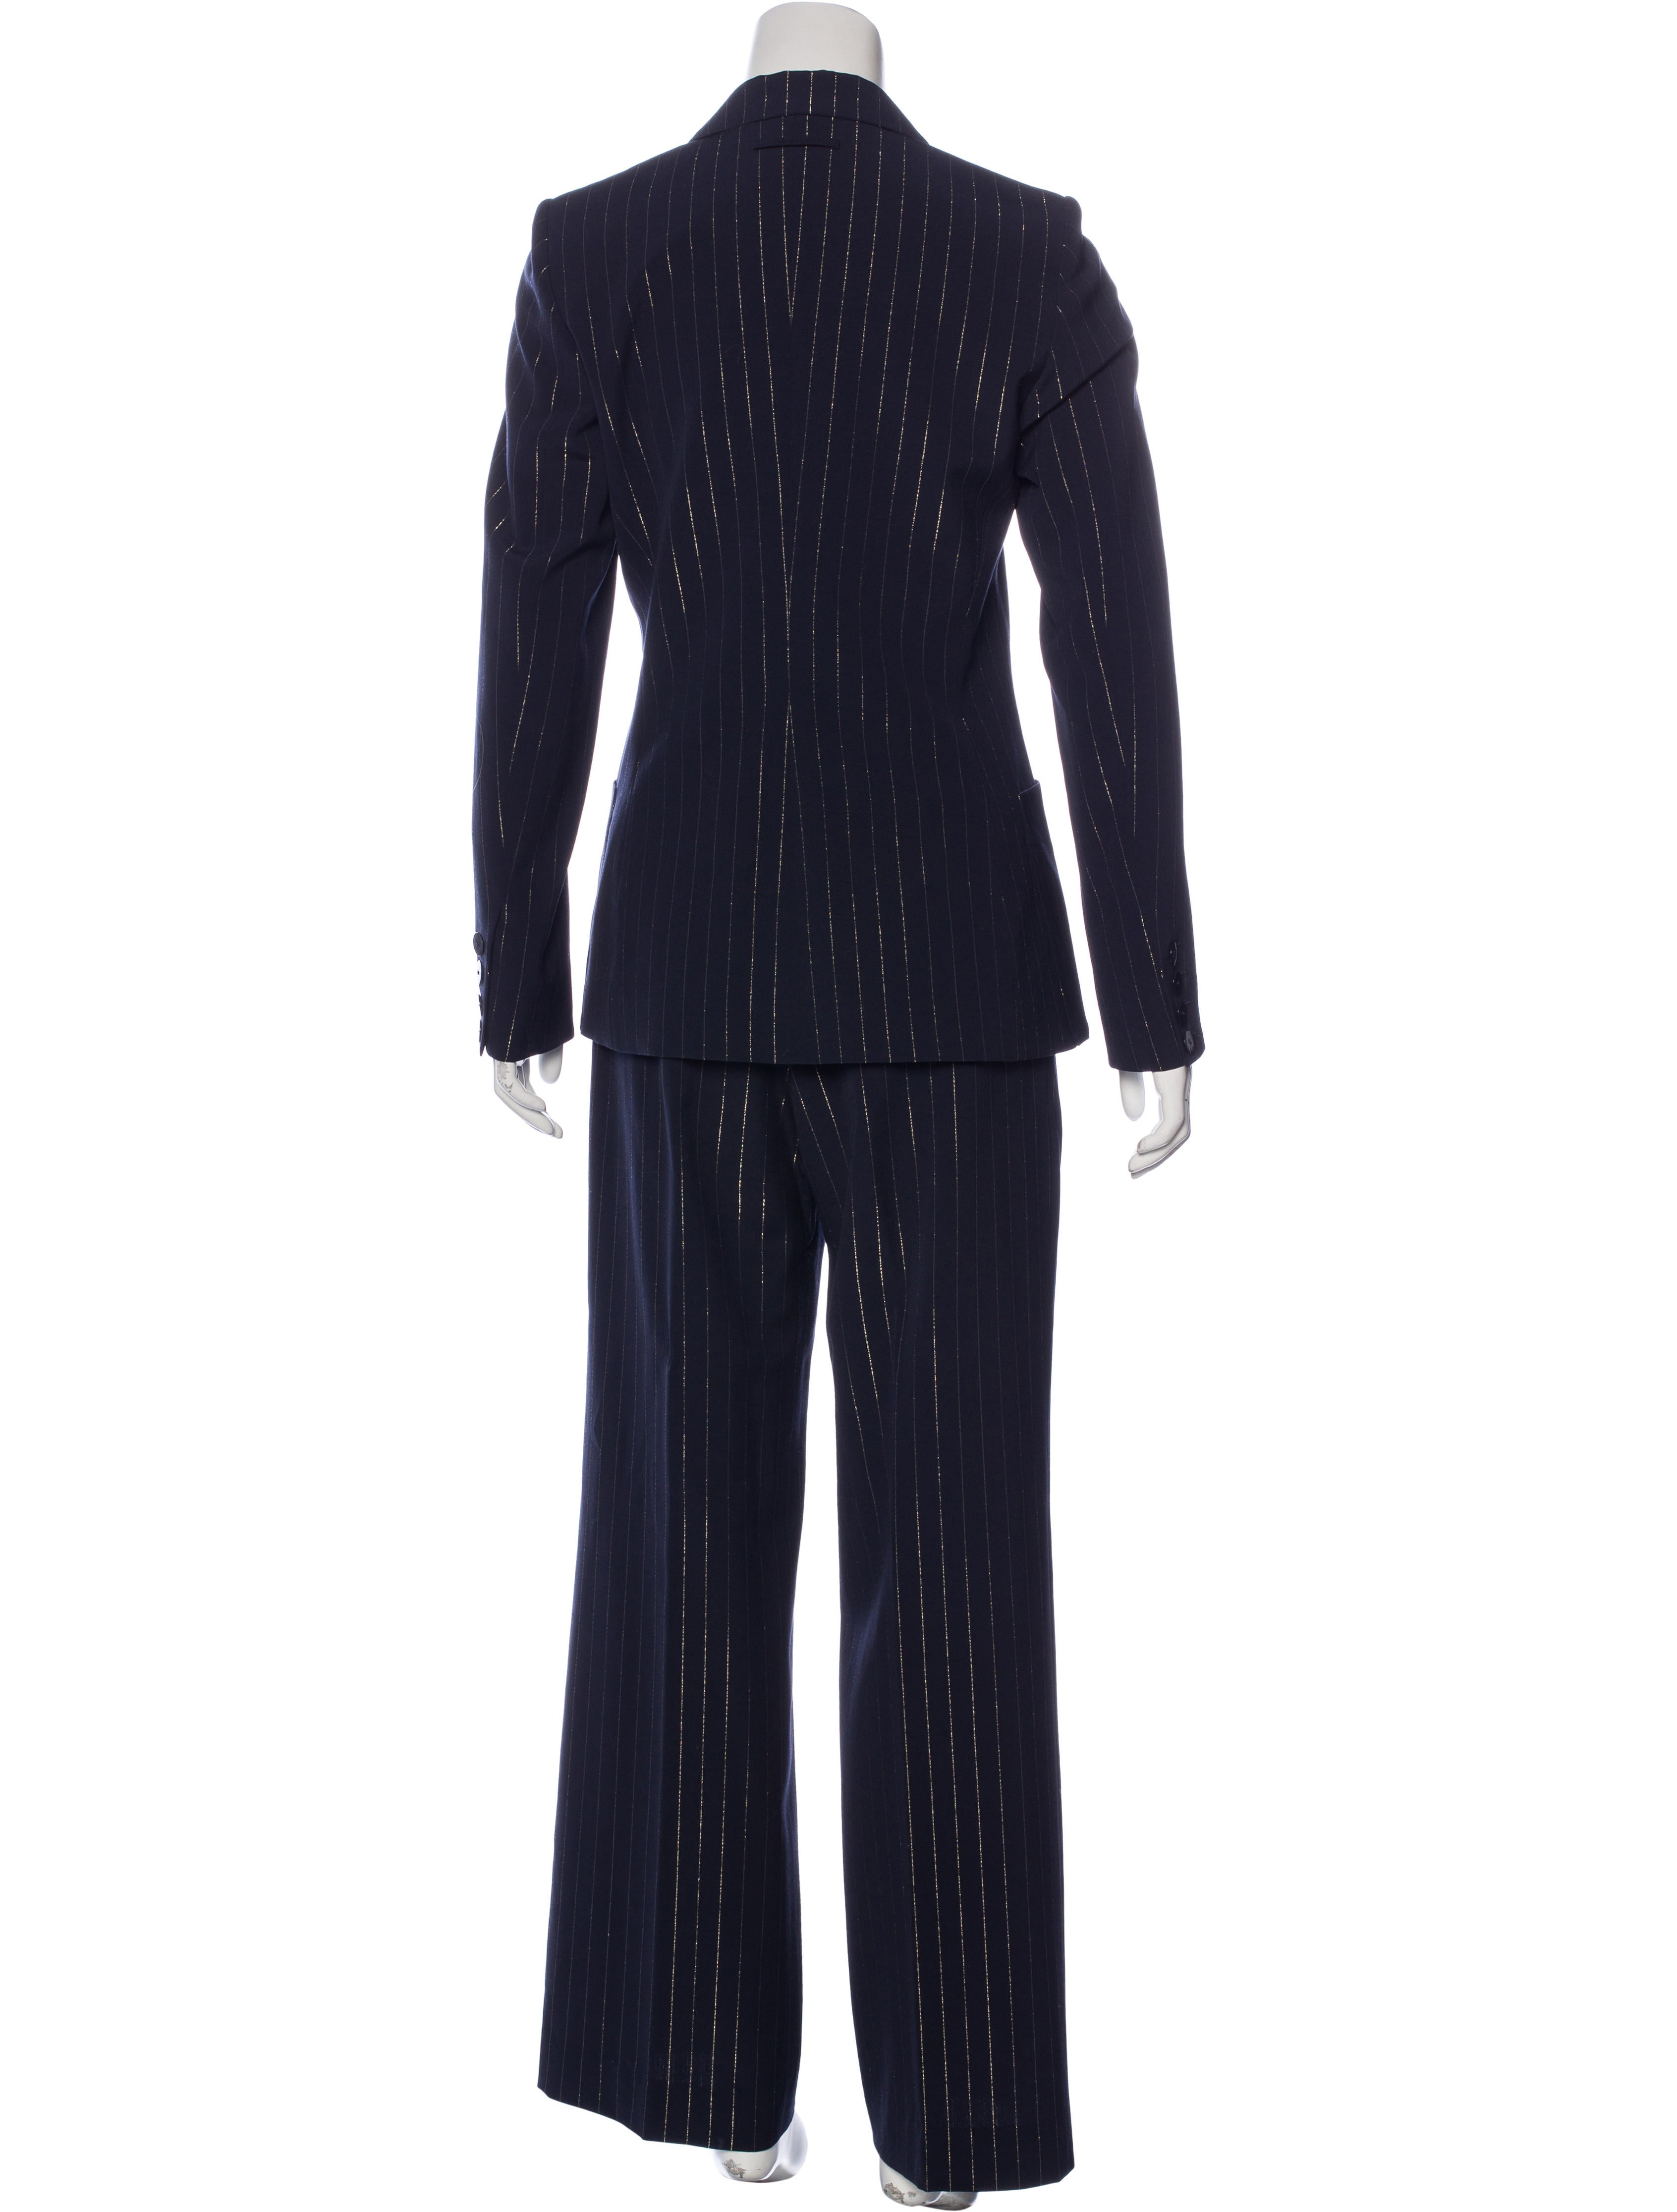 Jean paul gaultier striped virgin wool pantsuit clothing for Jean paul gaultier clothing